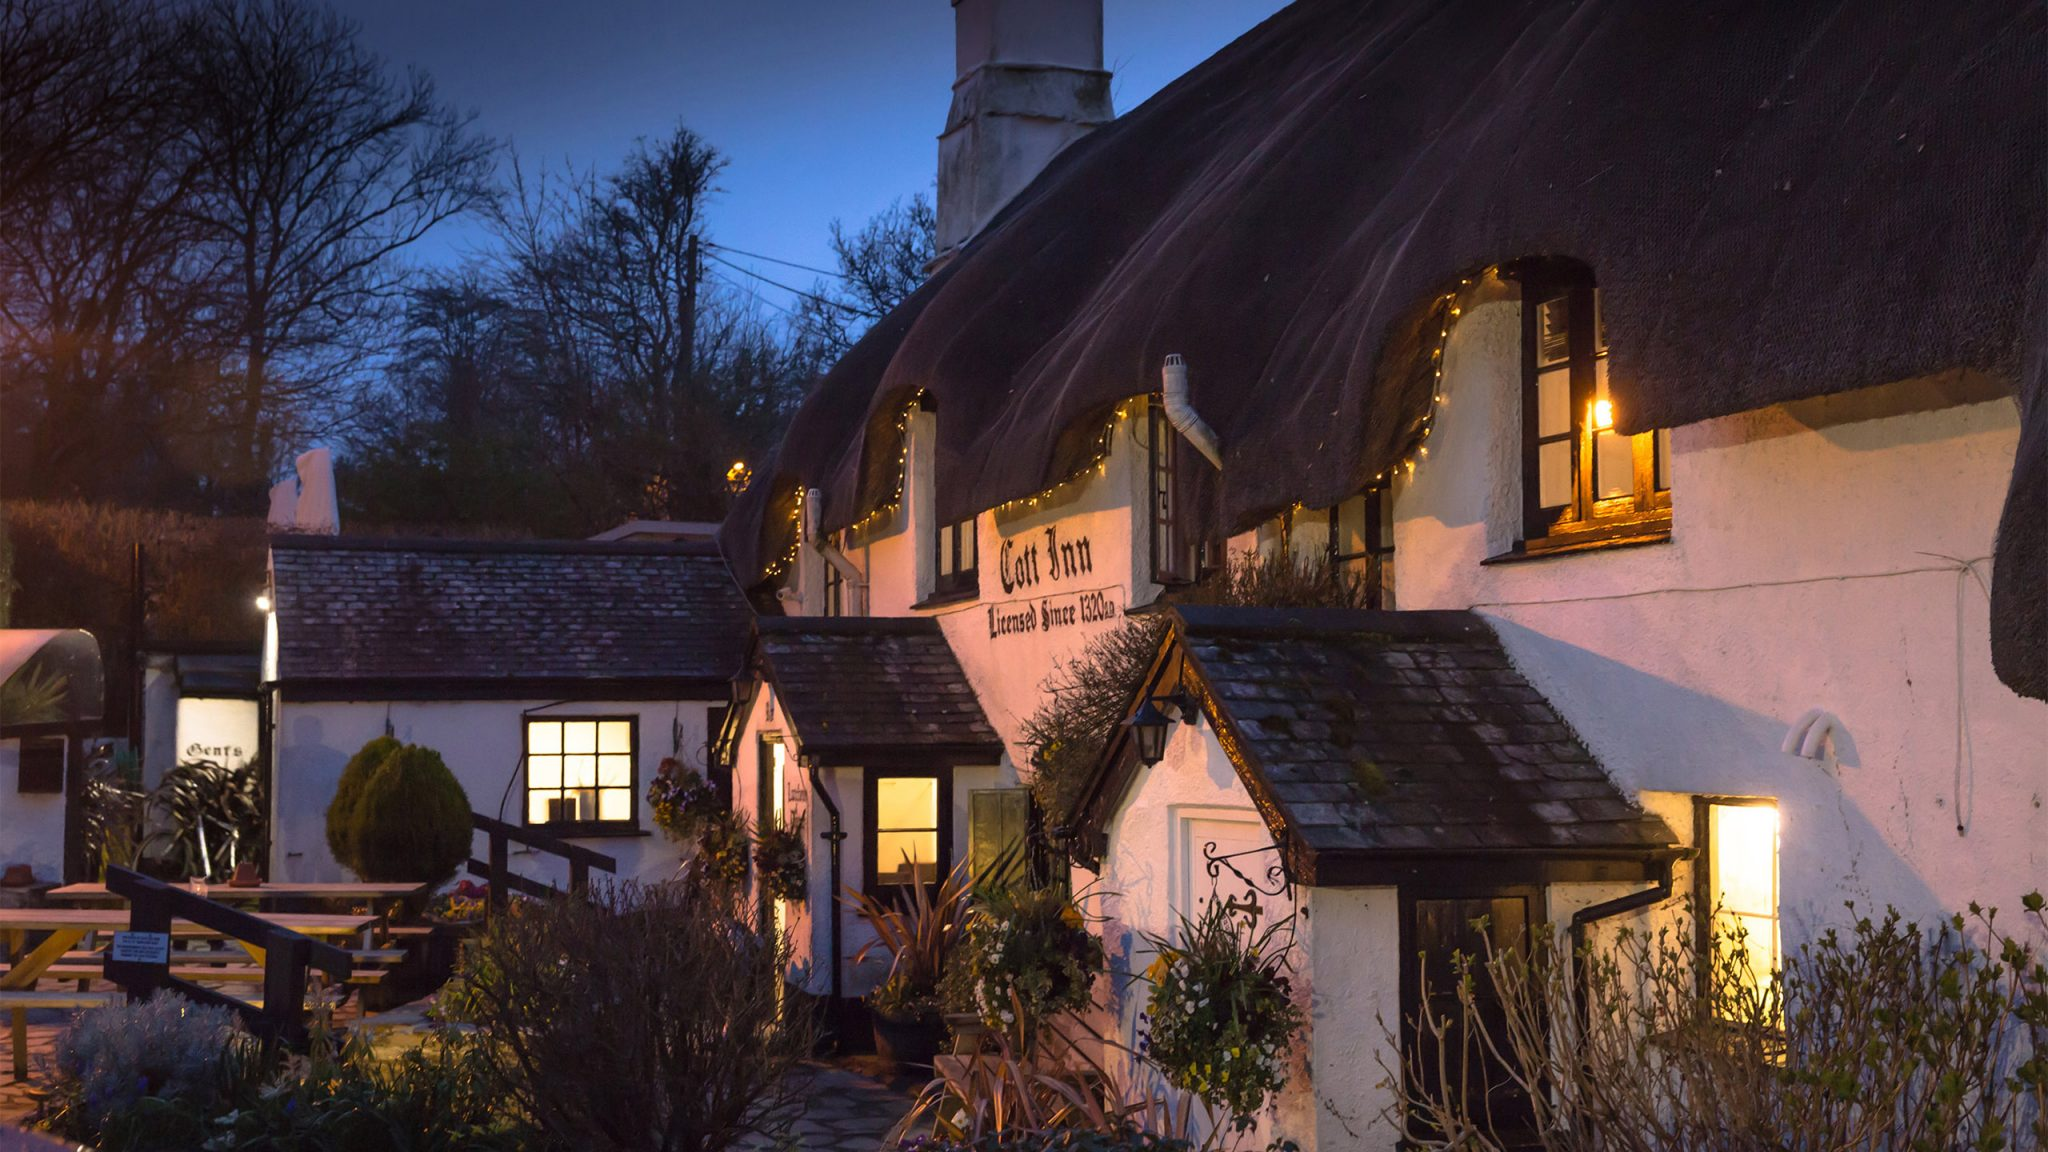 Twilight at The Cott Inn, Dartington Devon. Voted one of the best 30 pubs in the UK by the Telegraph Newspaper.